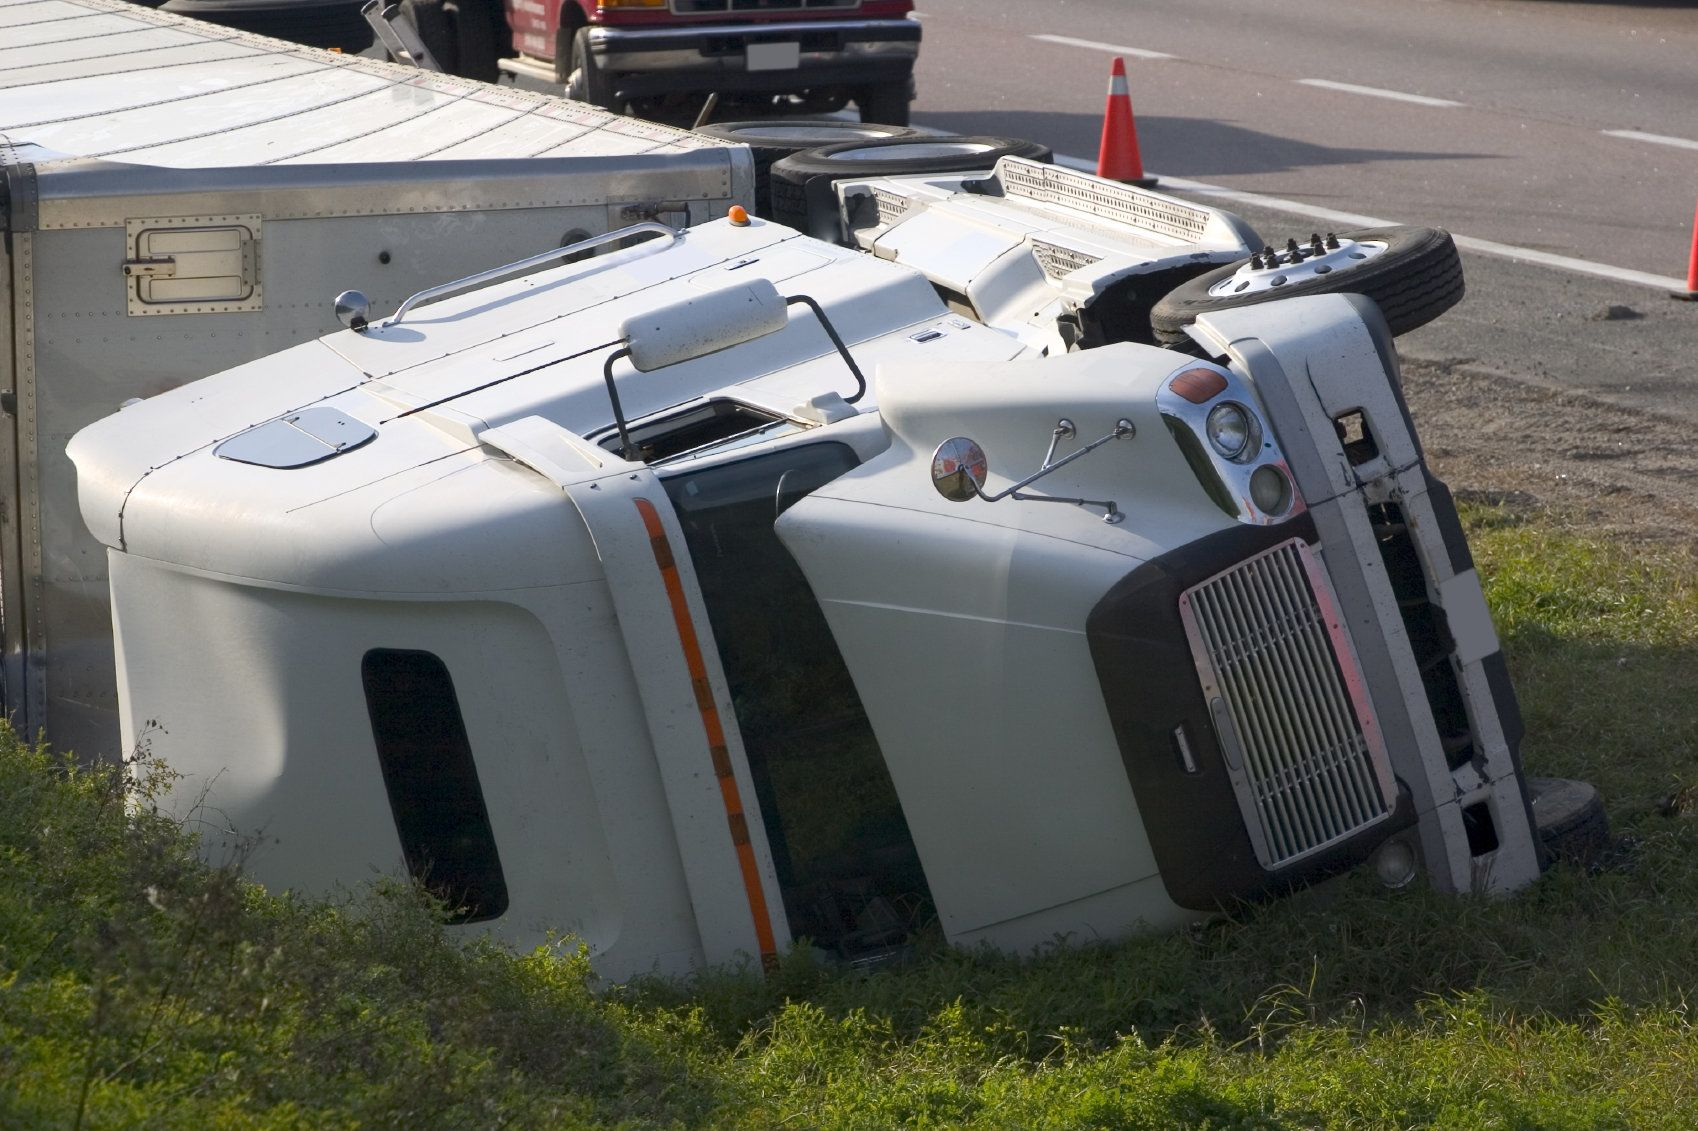 An overturned 18-wheeler truck after a rollover accident